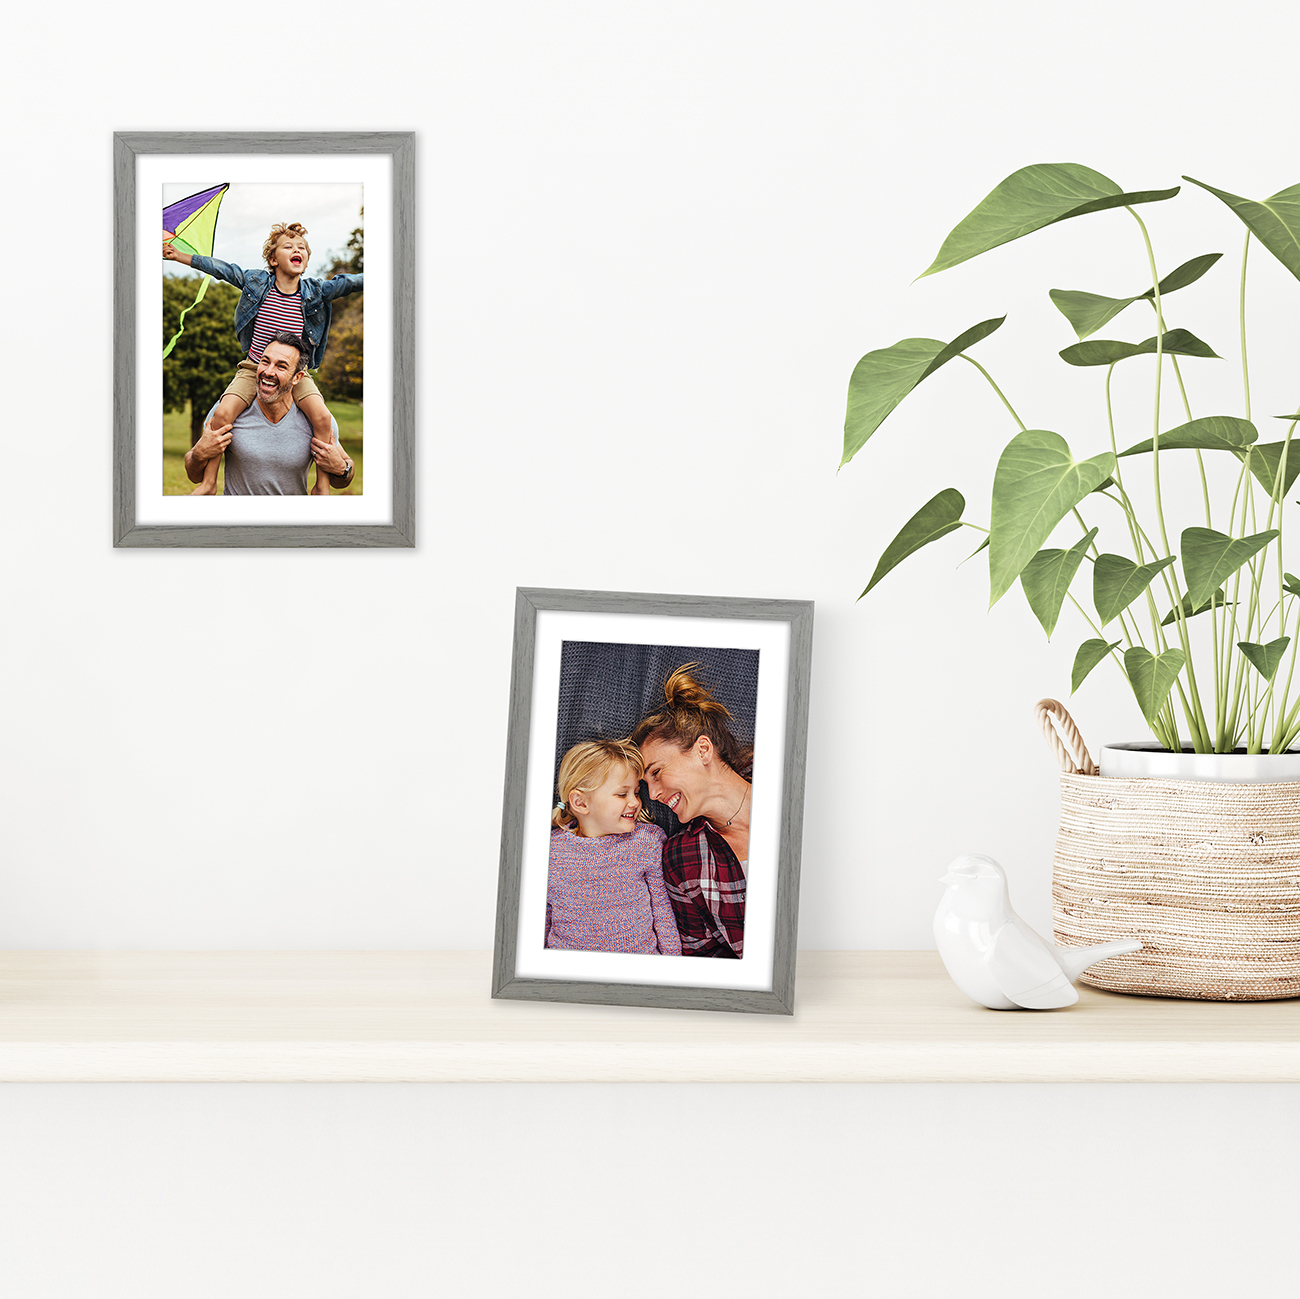 miniature 42 - Americanflat Thin Picture Frame 5x7 8x10 11x14 8.5x11 Wall Tabletop Pick Color